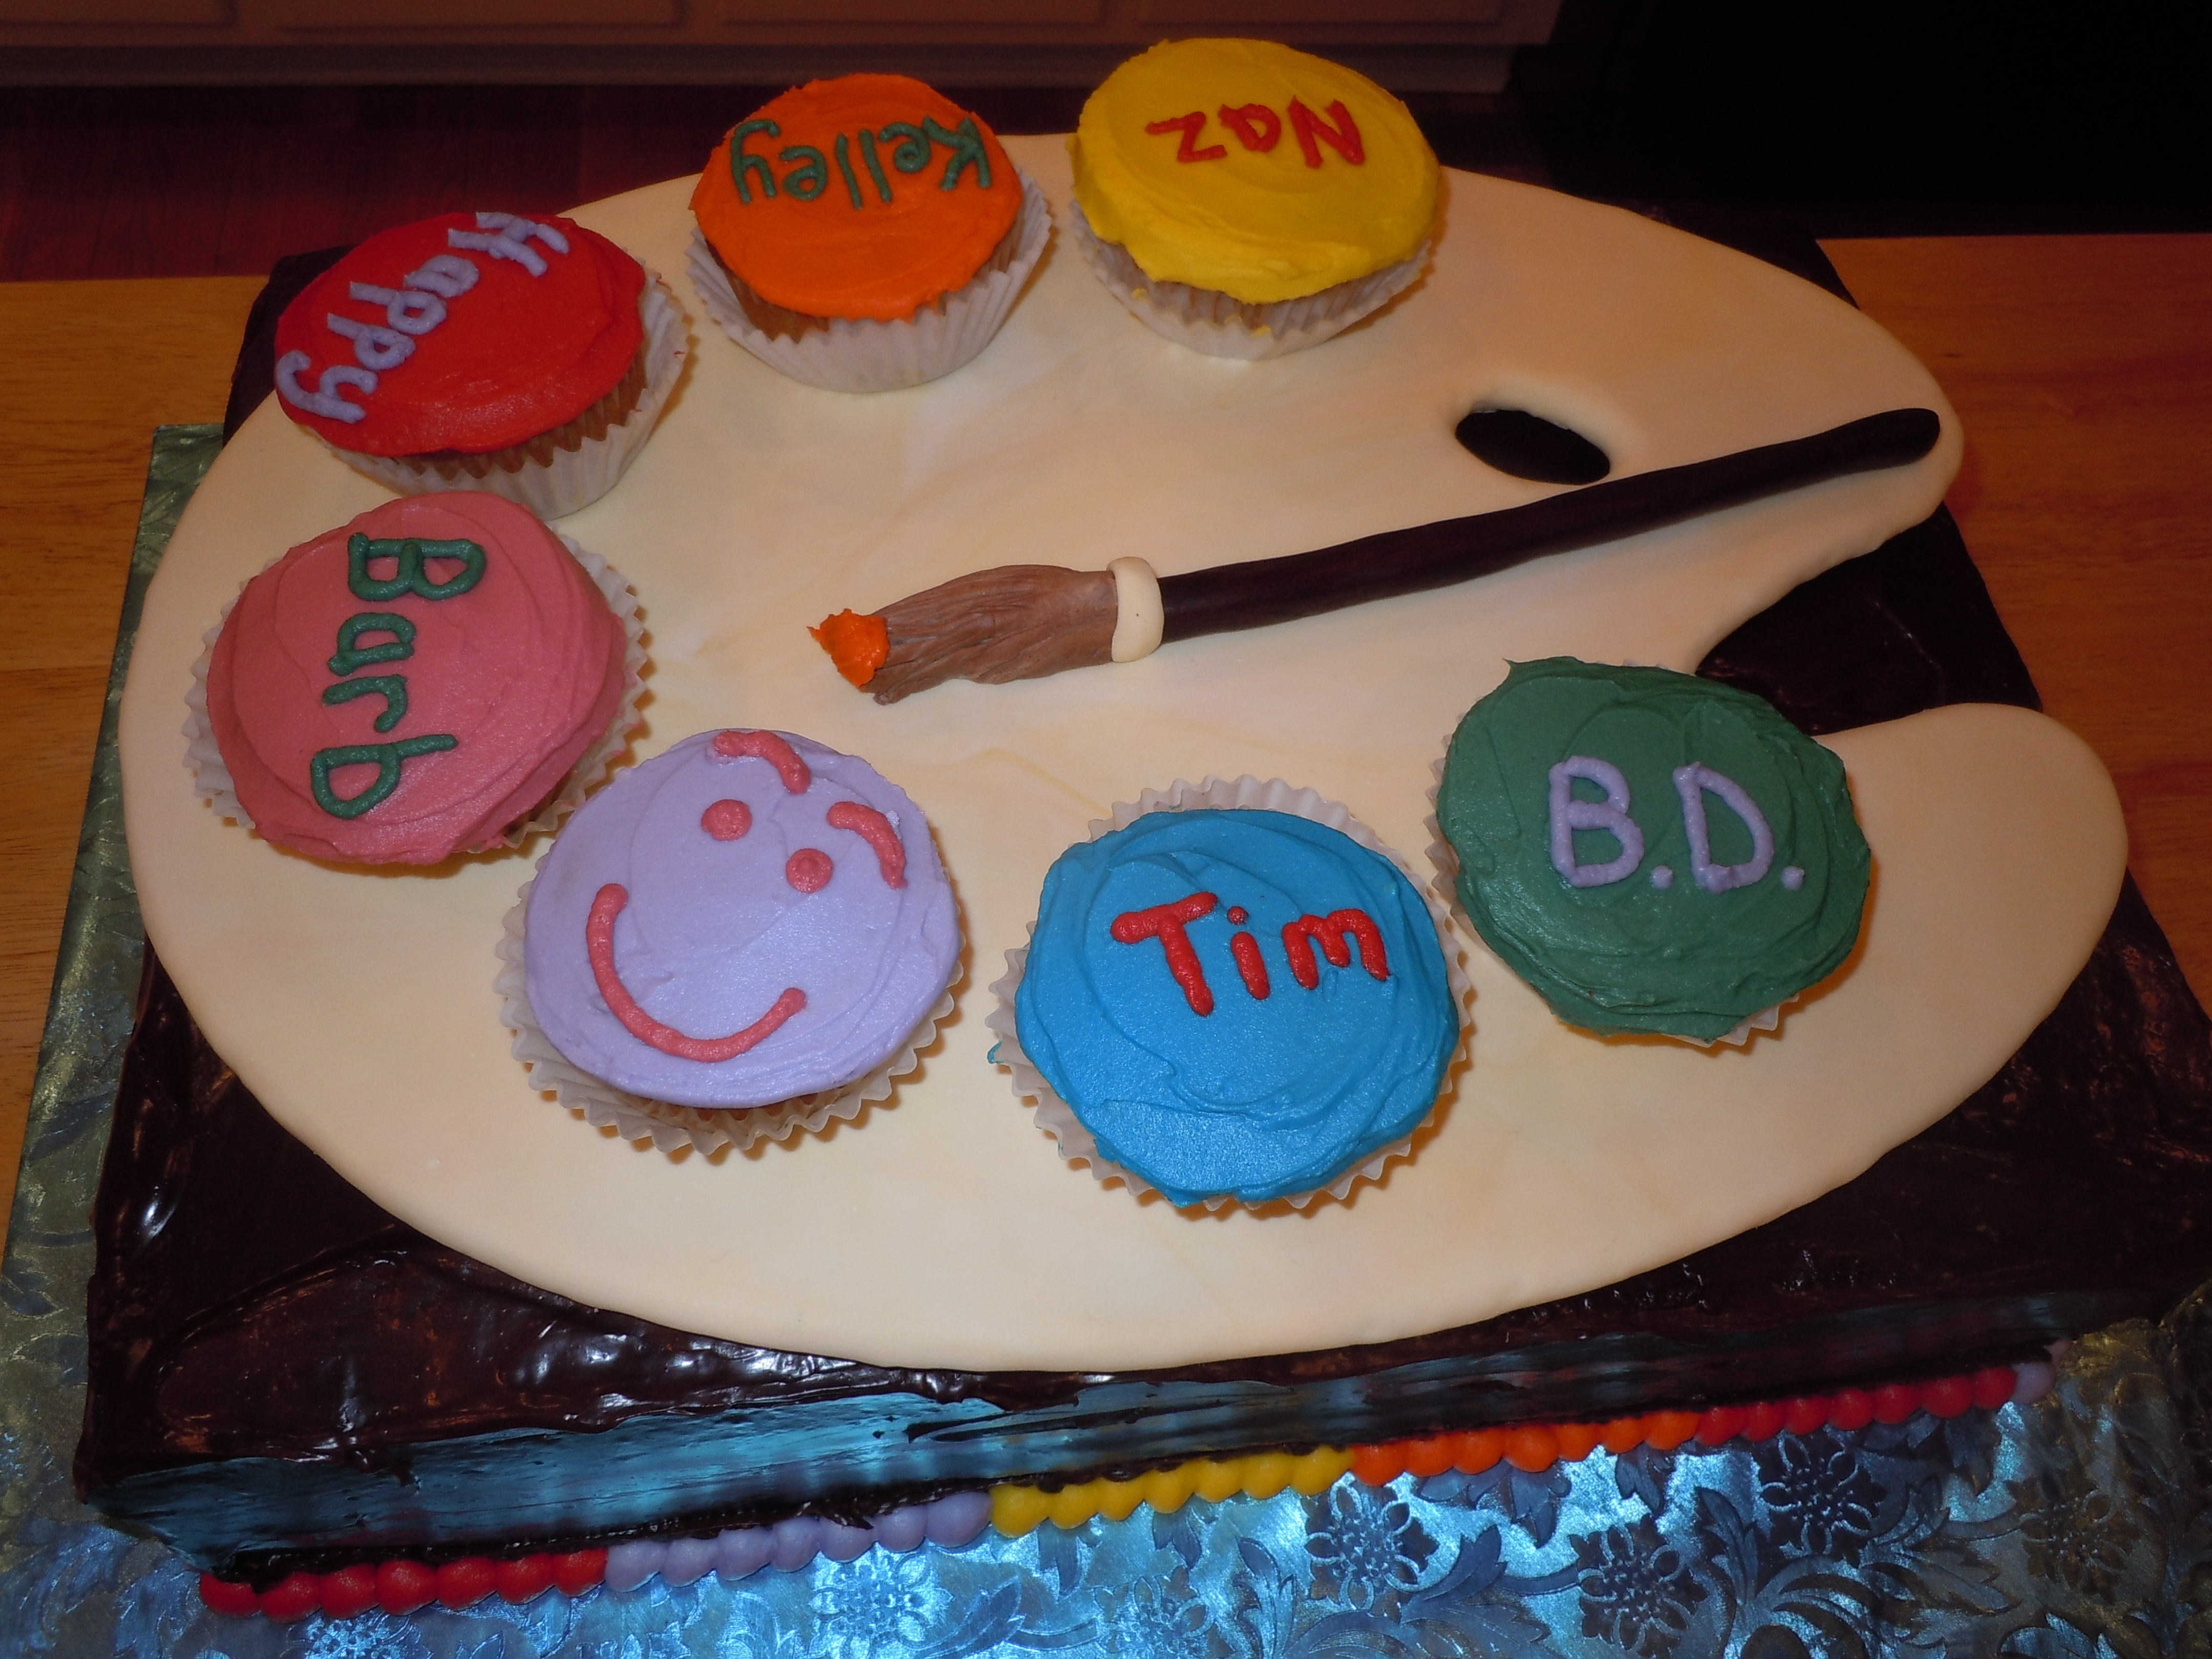 Edible art: gumpaste palette board and paint brush. Colorful cupcakes in a rainbow of colors.